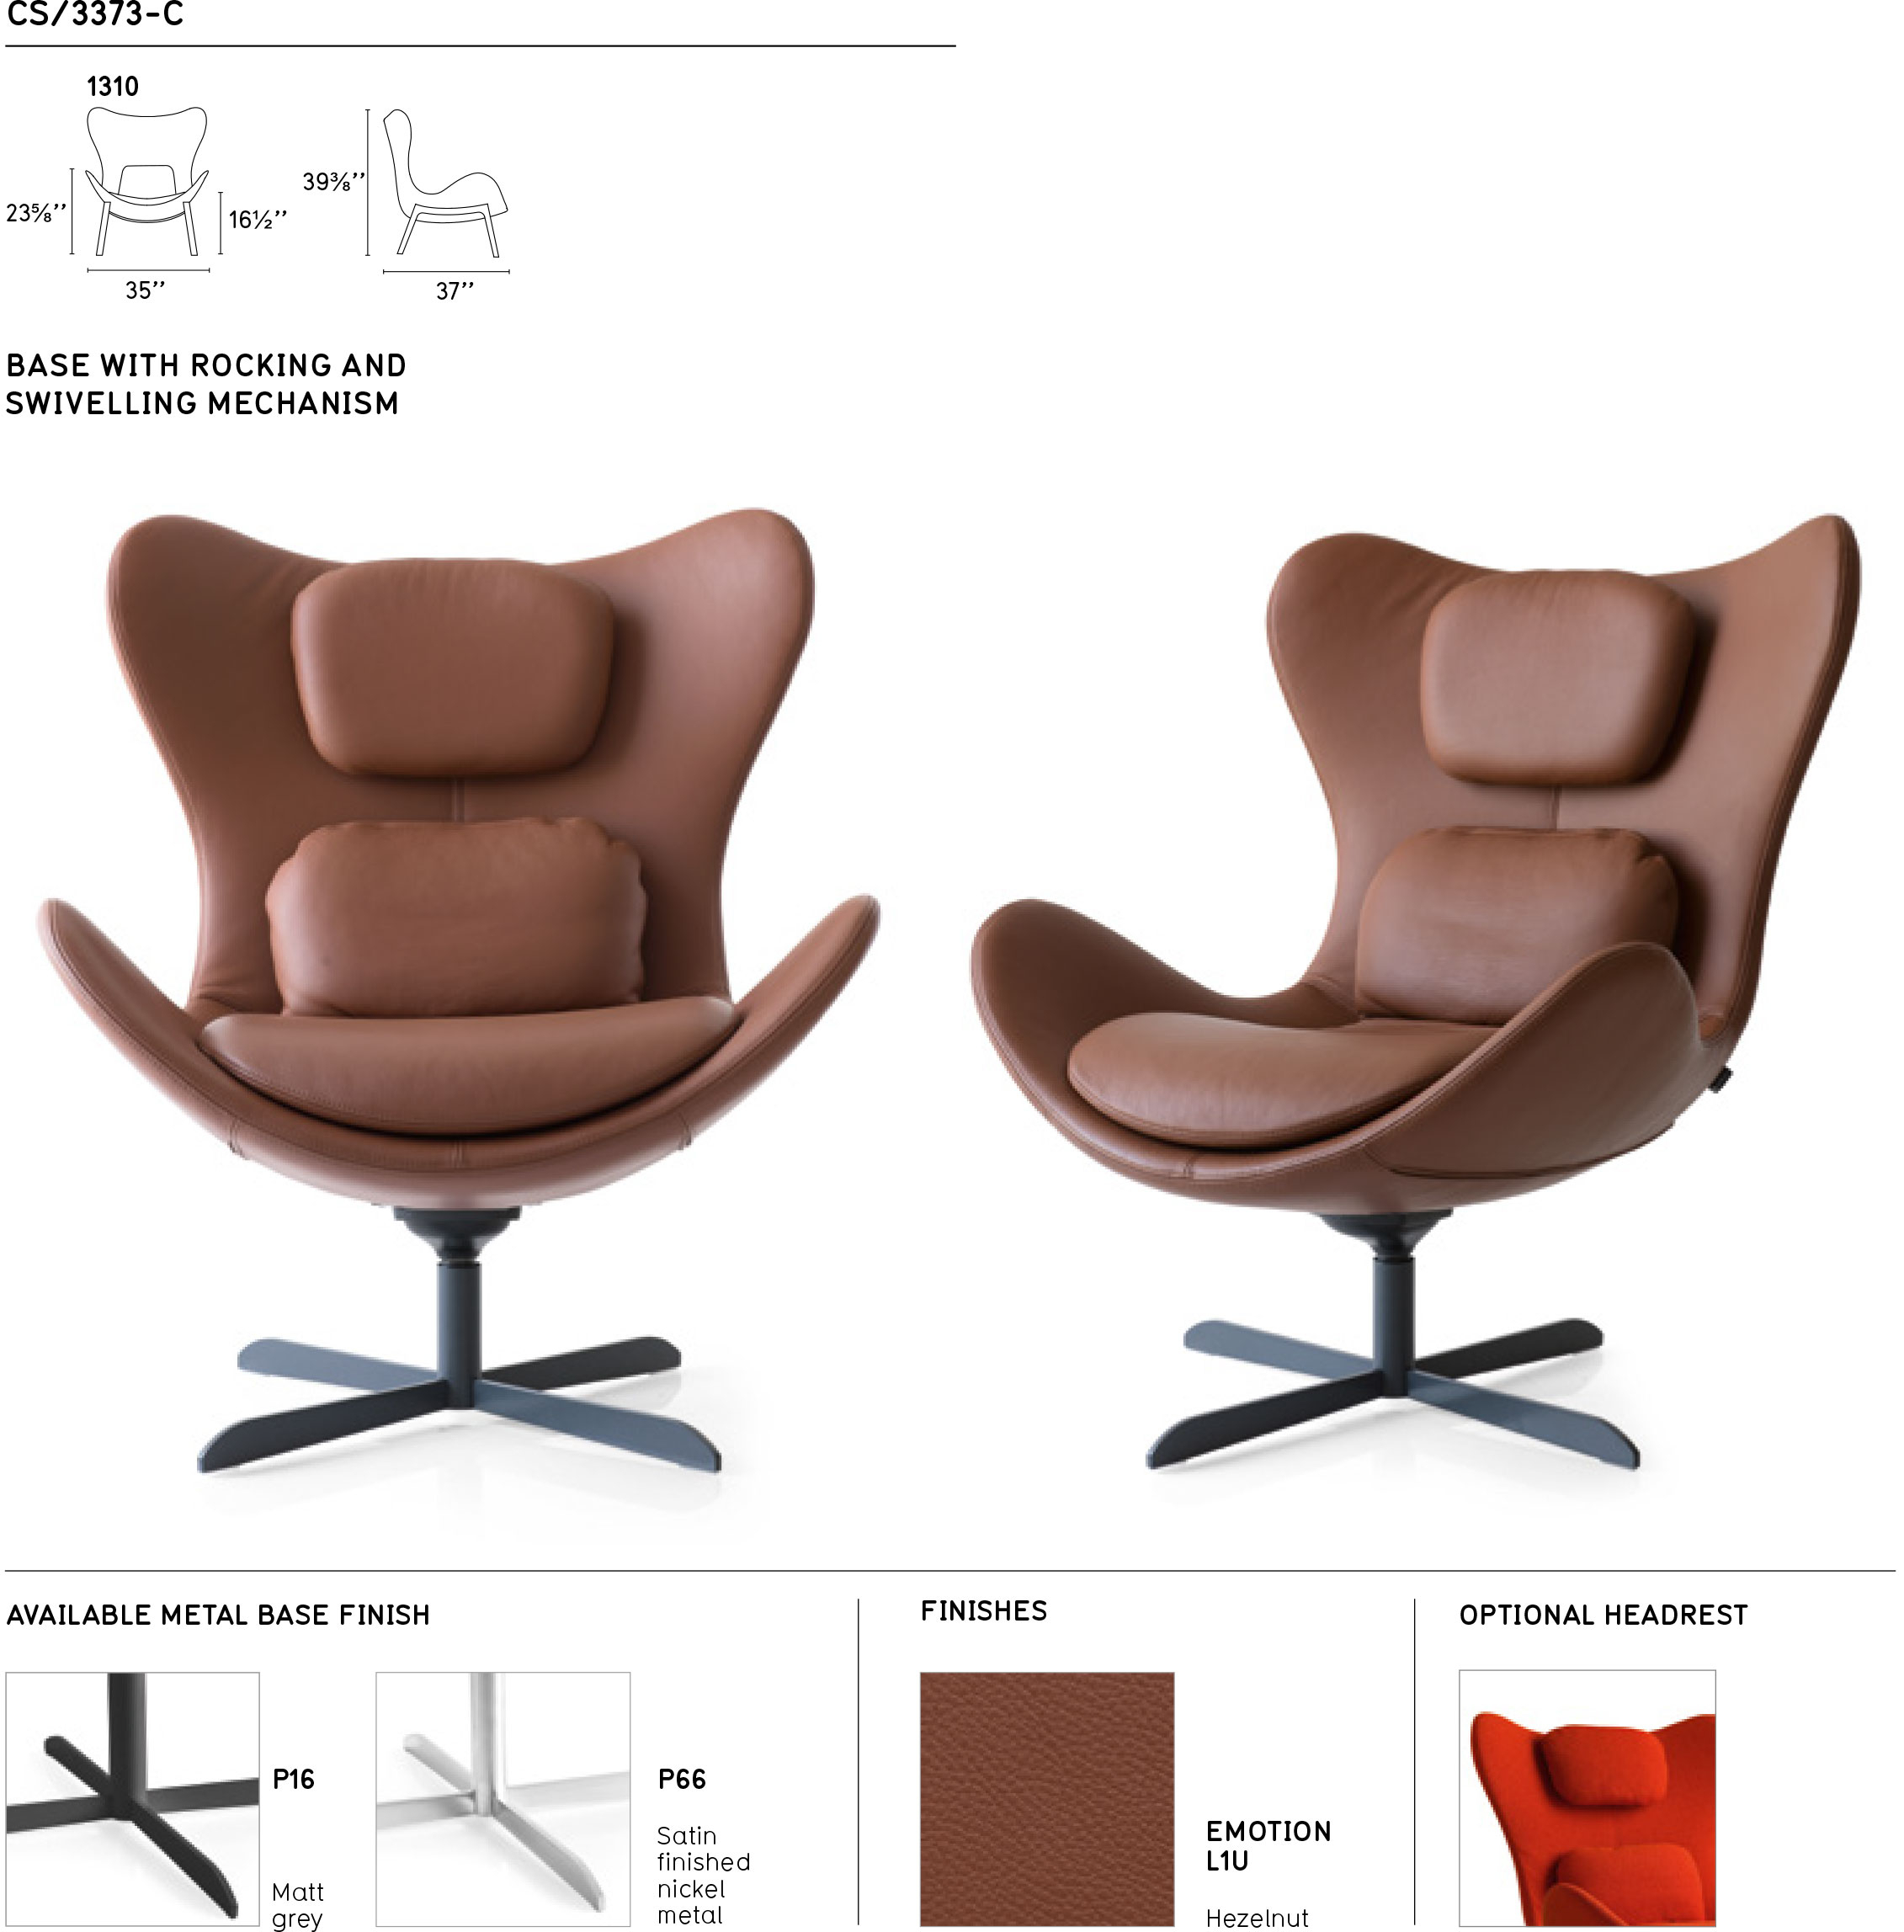 Lazy Cs/3373 C 1310 Swinging Swivel Chaircalligaris, Italy Pertaining To Chill Swivel Chairs With Metal Base (Image 15 of 20)